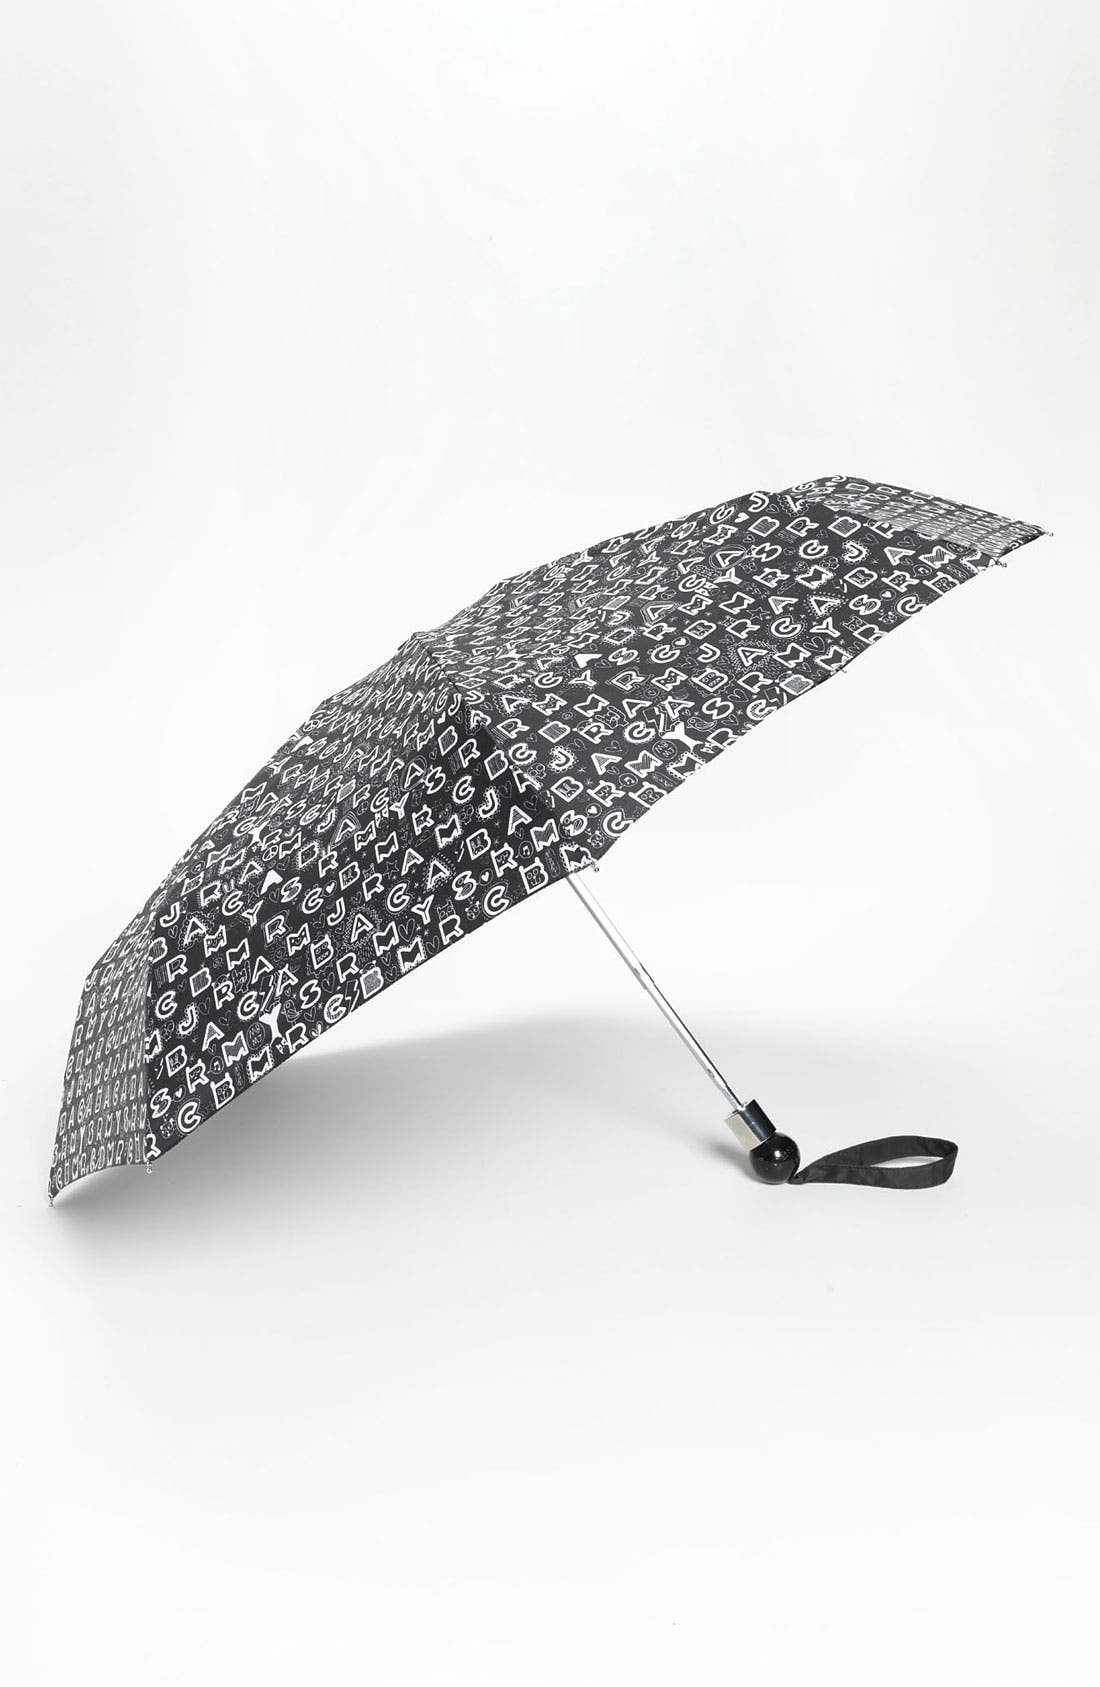 Alternate Image 1 Selected - MARC BY MARC JACOBS 'Dreamy Graffiti' Umbrella